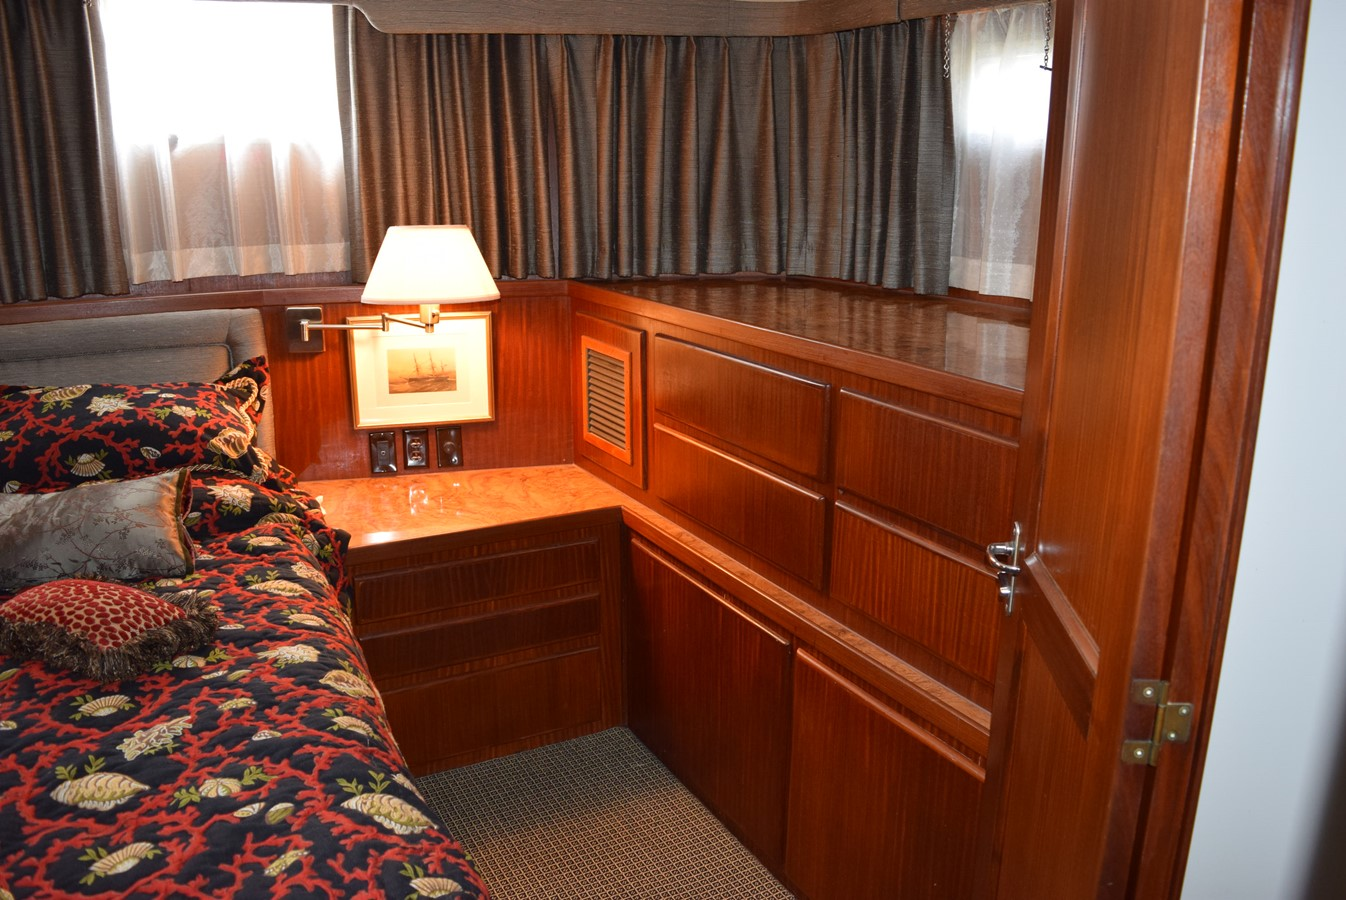 33 - 54 HATTERAS For Sale